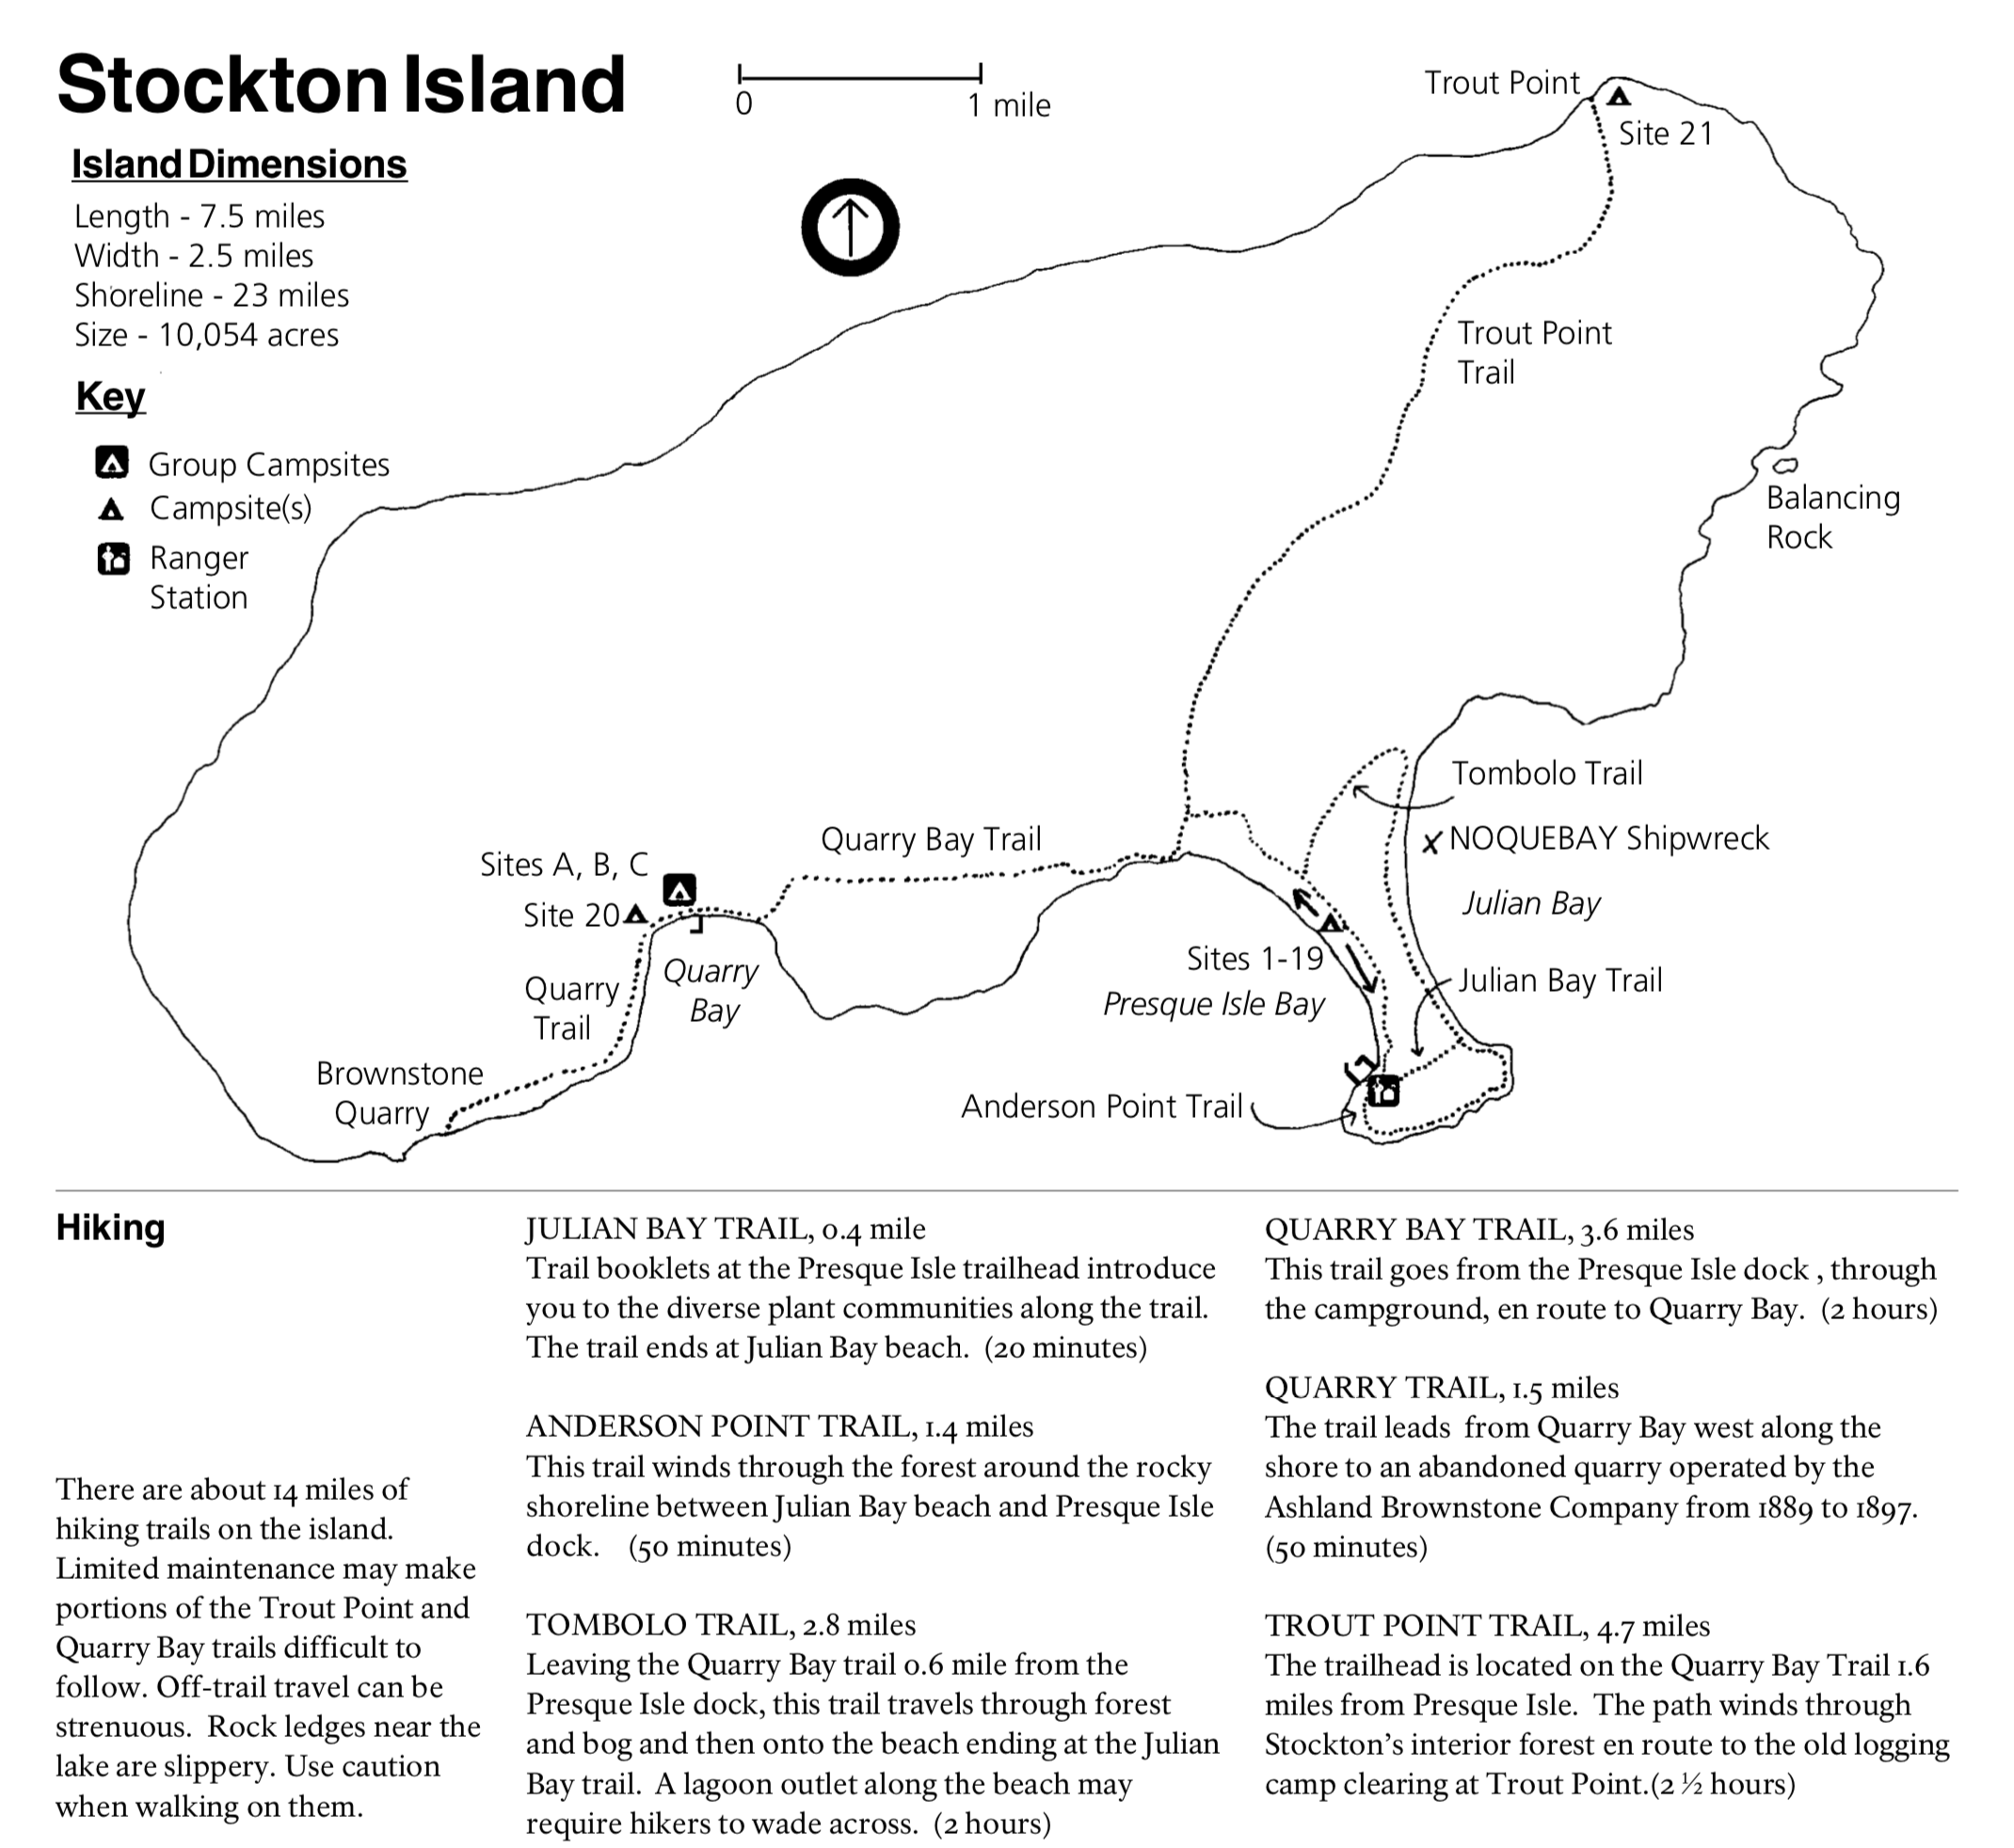 Download Stockton Island Brochure from NPS